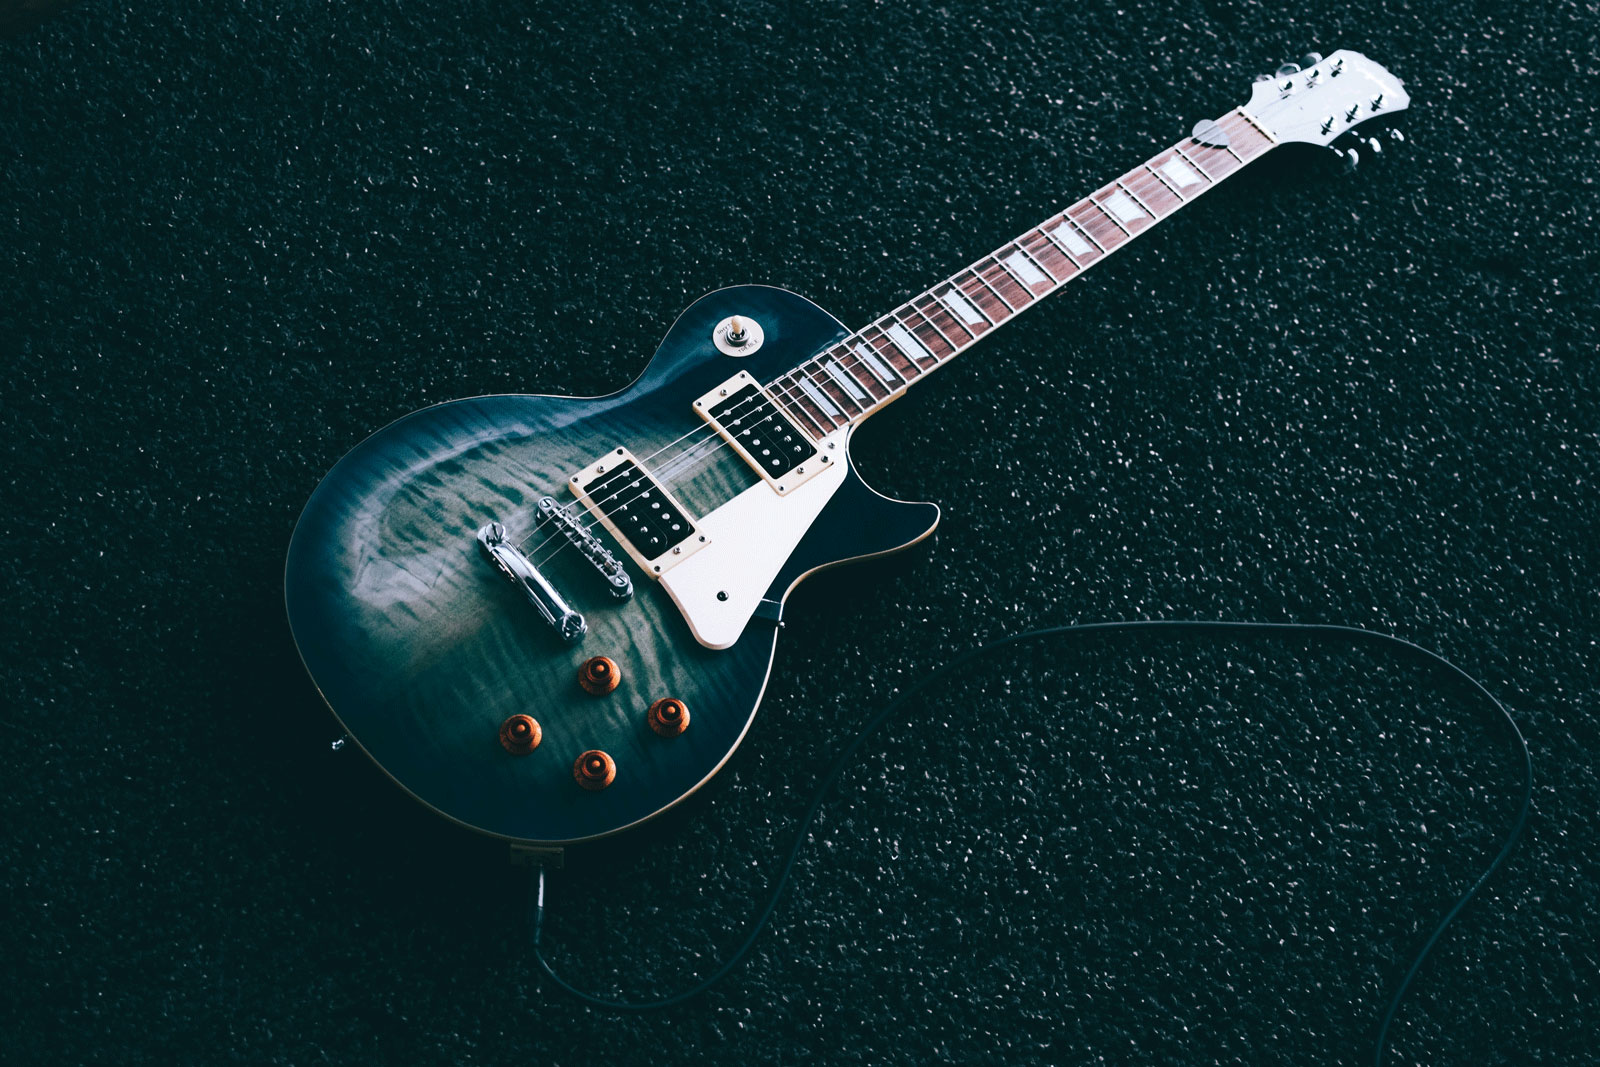 Guitar | The 10 Most Badass, Best Guitar Players Throughout History